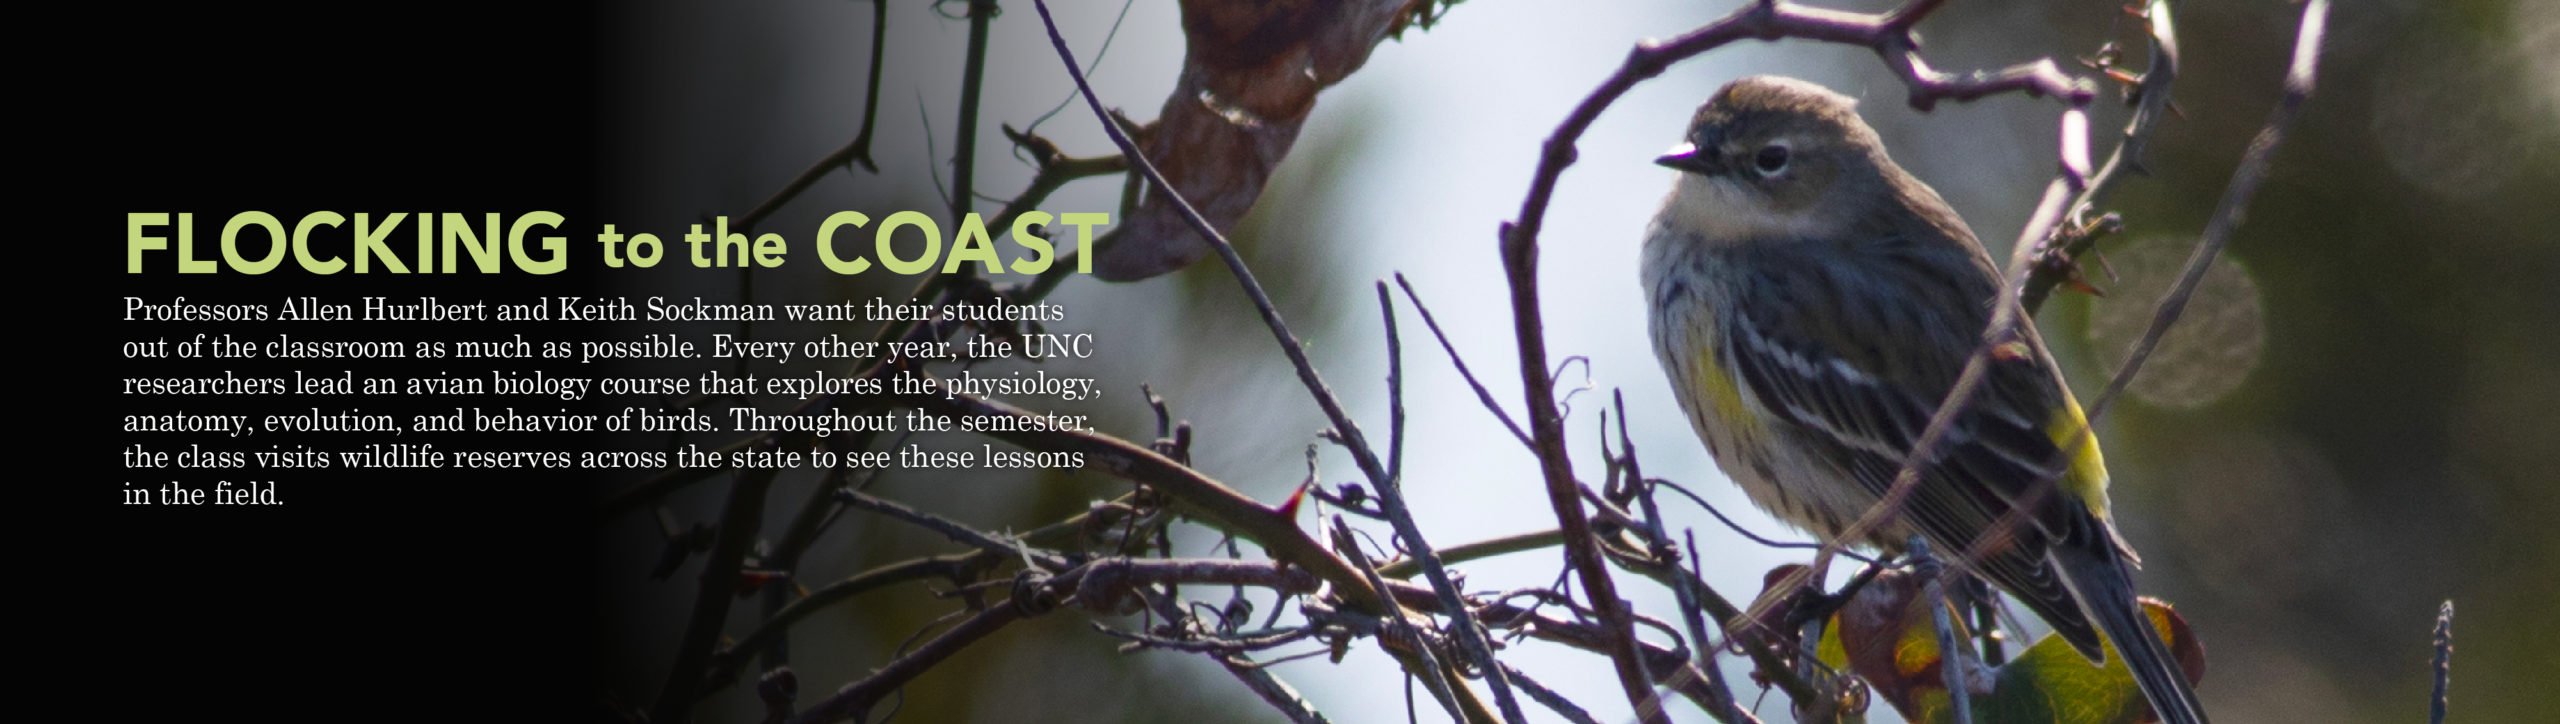 Banner with a bird perched on a tree. Banner states: Flocking the Coast. Professors Allen Hurlbert and Keith Sockman want their students out of the classroom as much as possible. Every other year, the two UNC researchers lead an avian biology course that explores the physiology, anatomy, evolution, and behavior of birds. Throughout the semester, the class visits places like Mason Farm Biological Reserve, Morehead City, Beaufort, and the Outer Banks to see these lessons in the field.